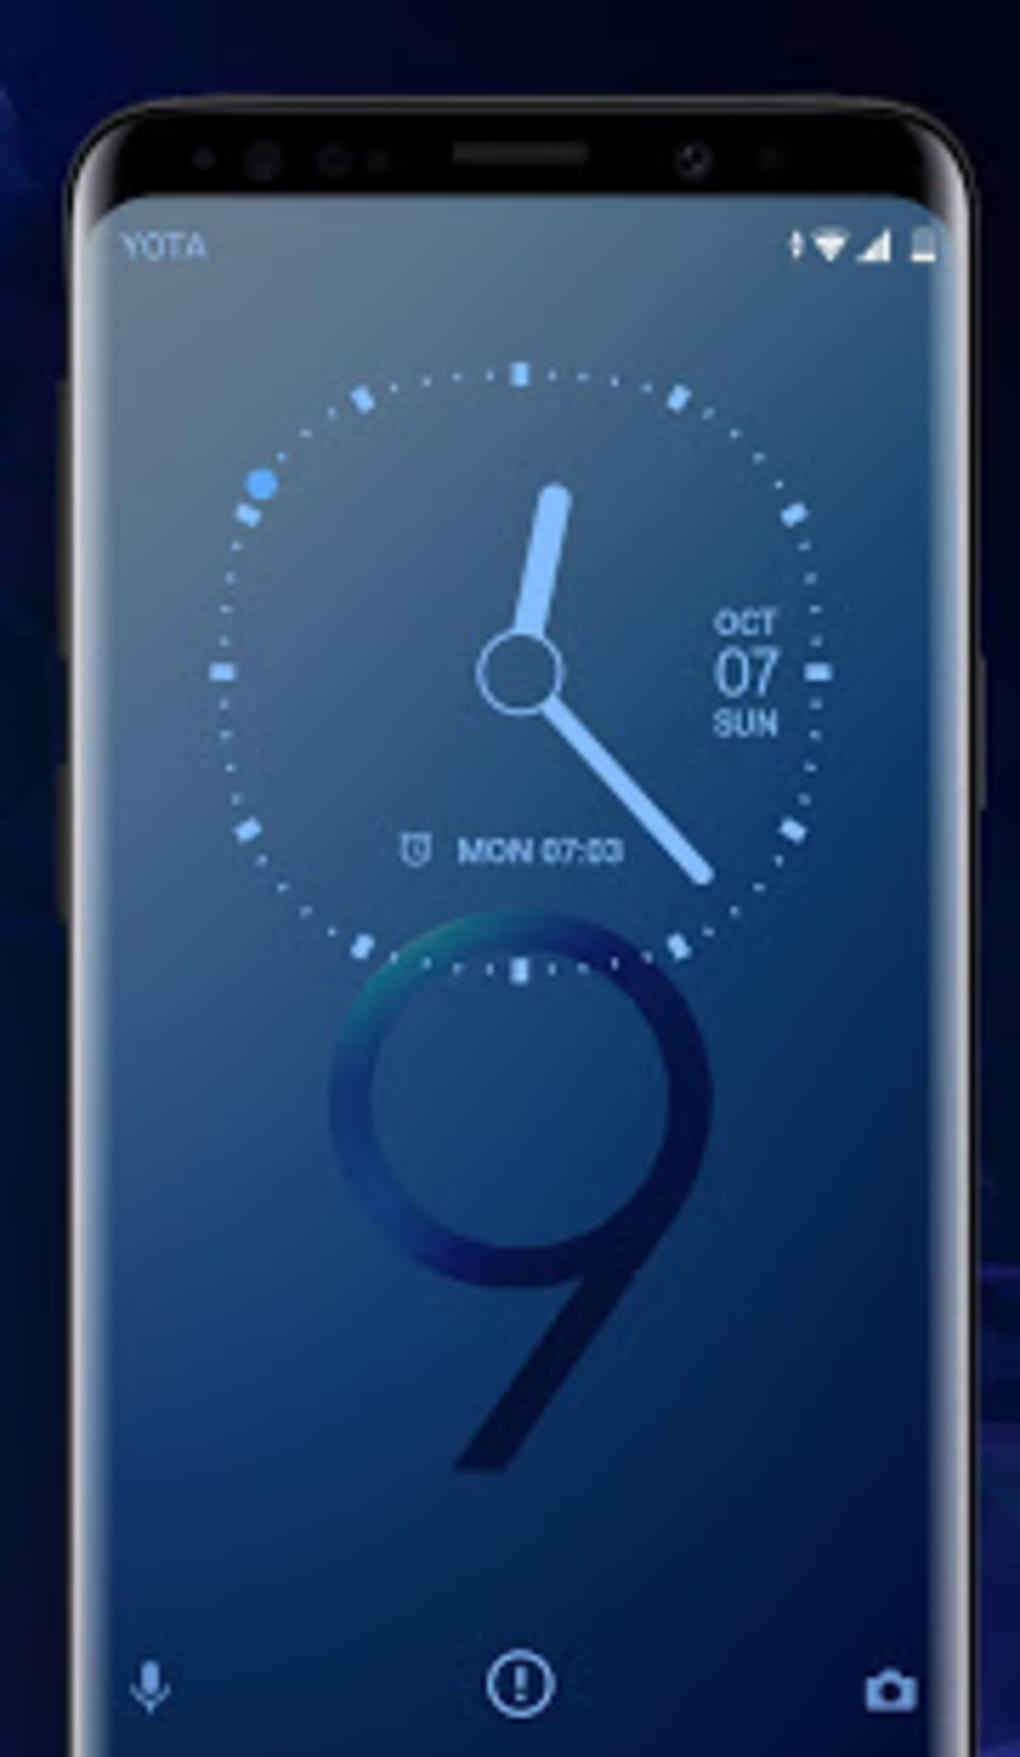 Galaxy S9 blue Xperia Theme for Android - Download